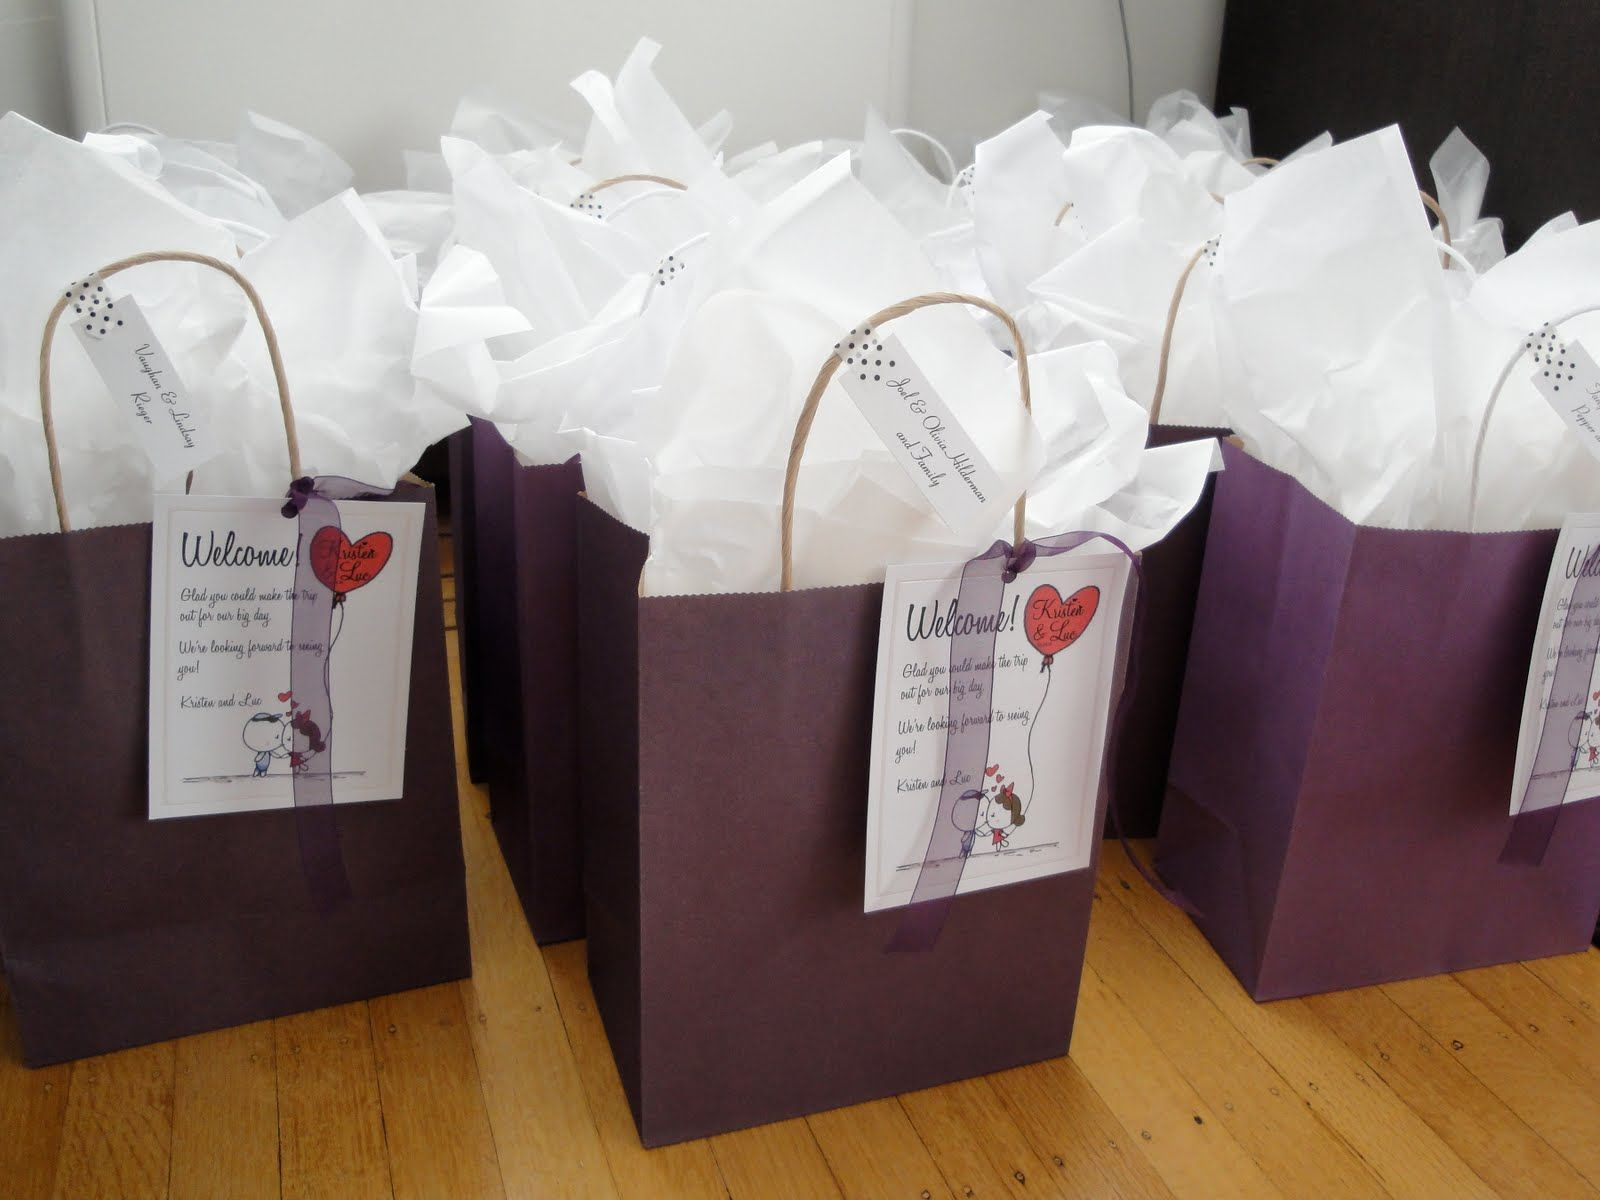 wedding gift bags Wedding Gifts Wedding Gift Bags For Out Of Town Guests Extraordinary What Do You Put In Gift Bags For Out Of Town Wedding Guests For Your Dresses And